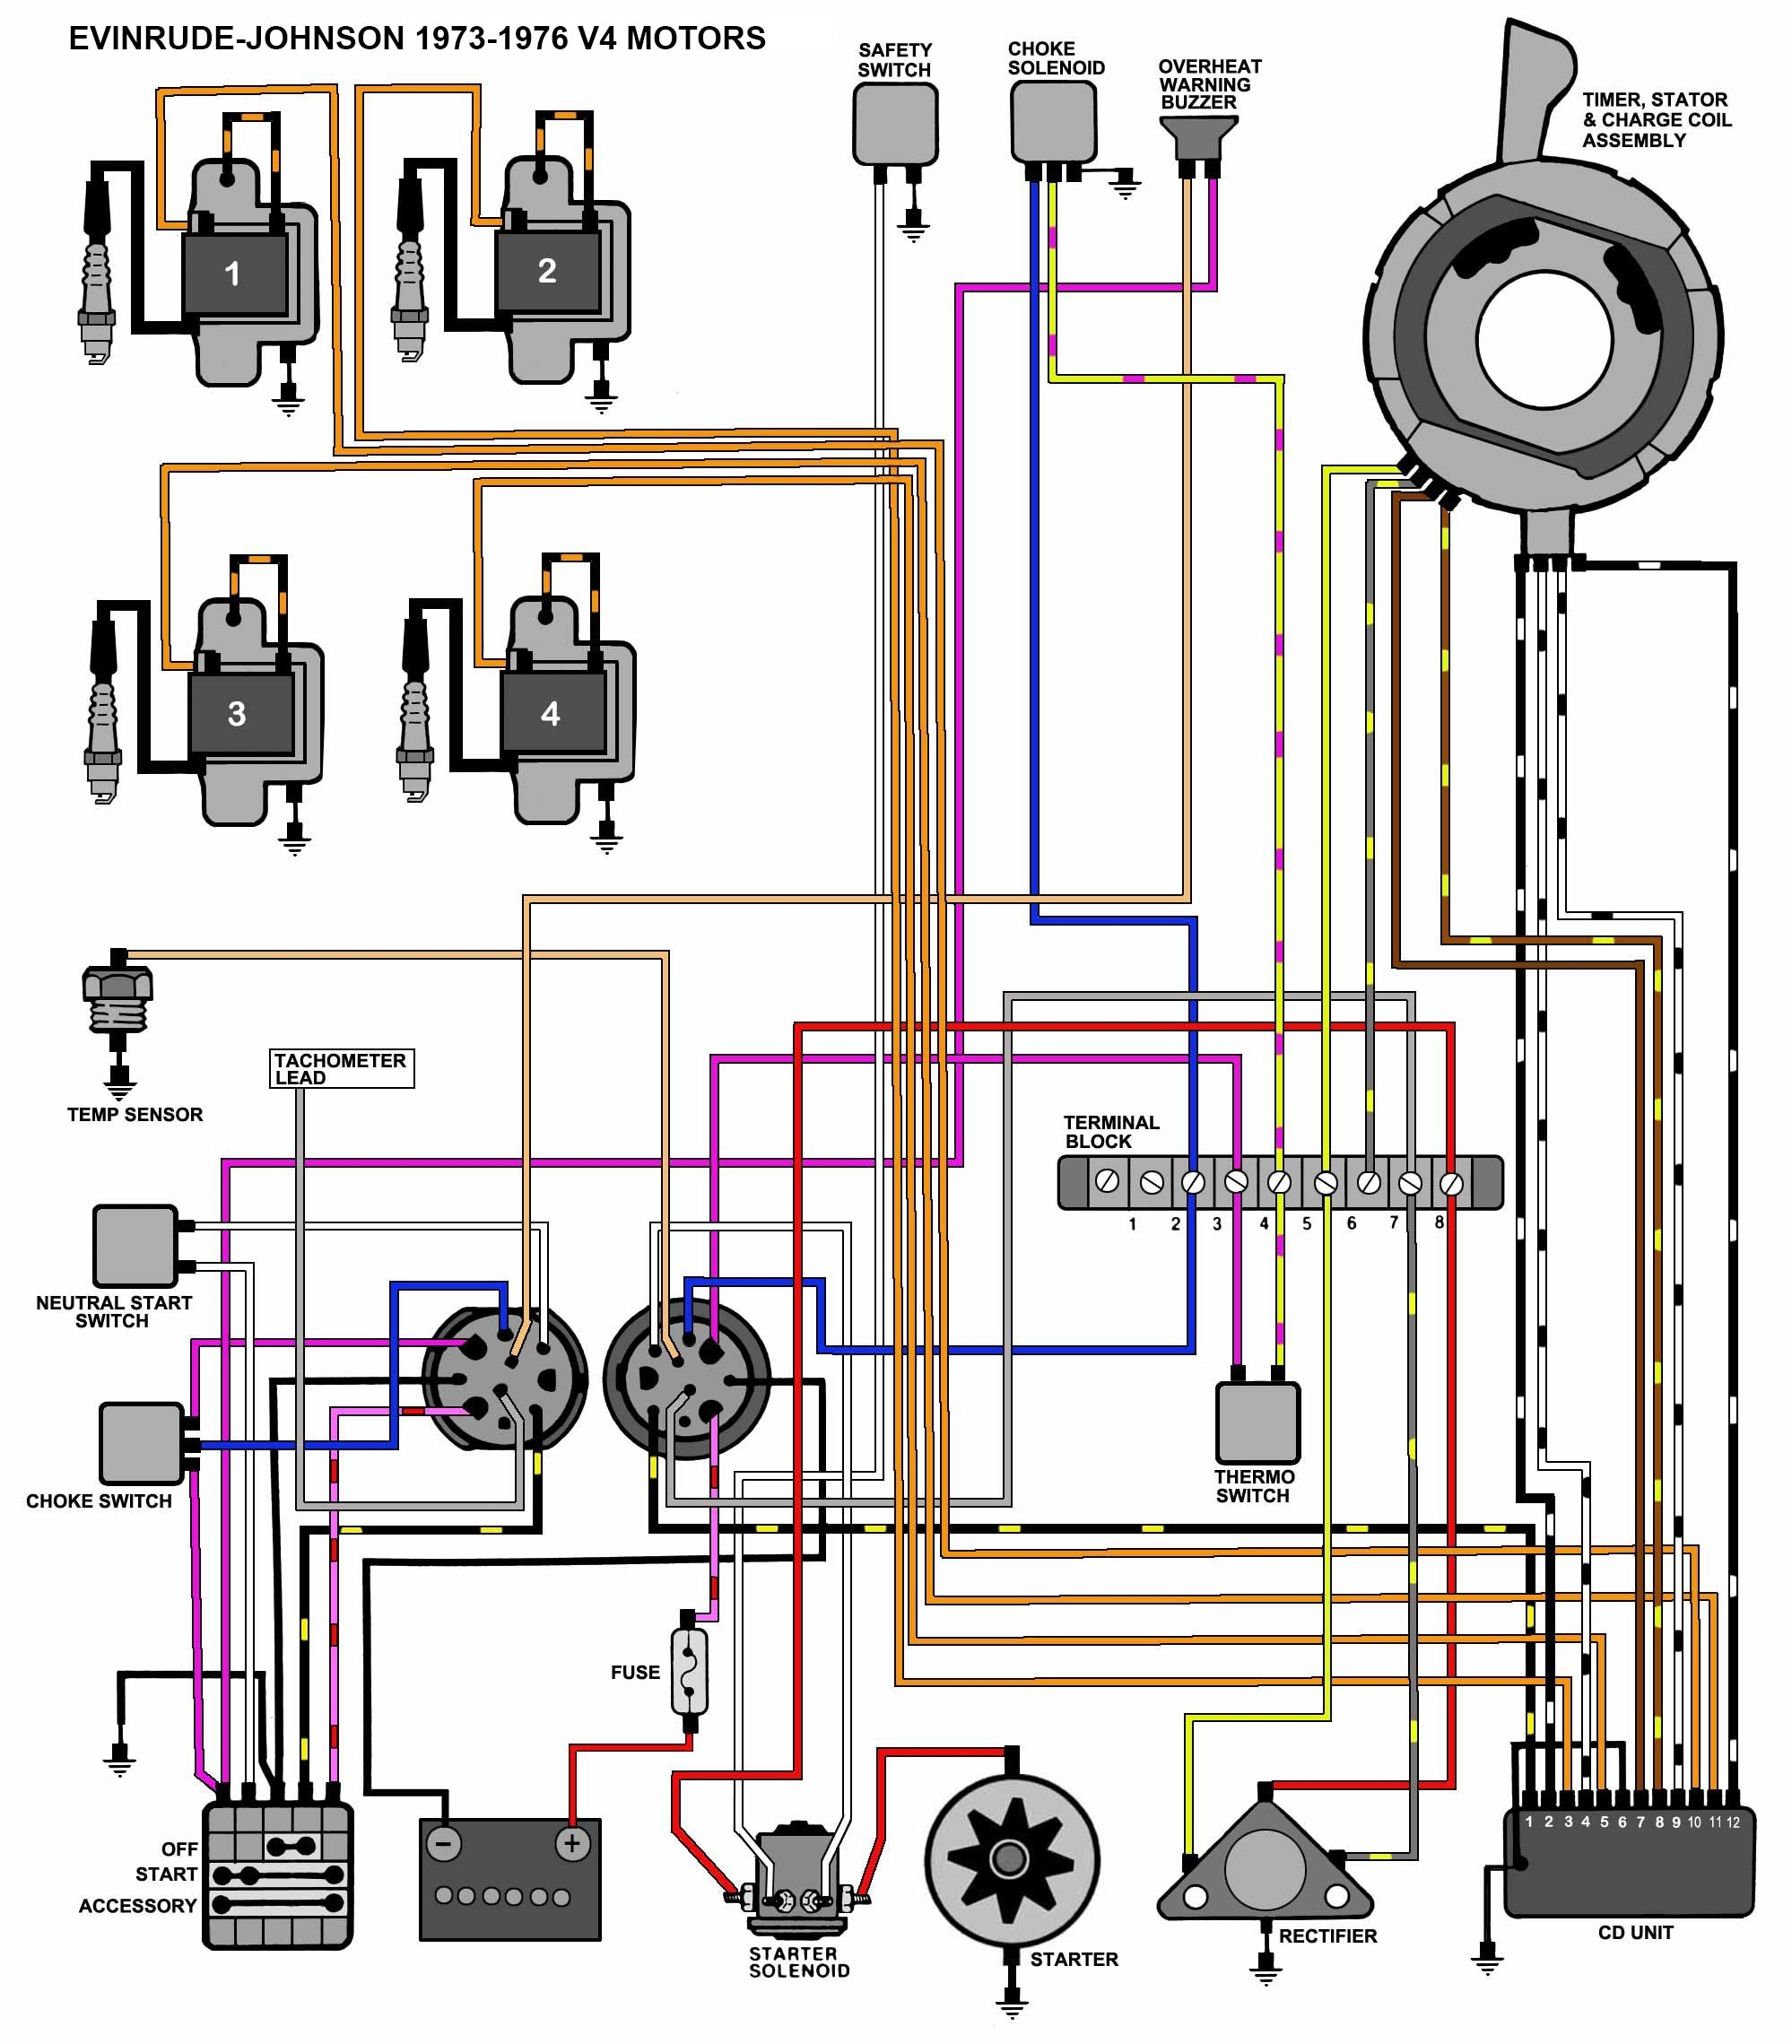 evinrude ignition switch wiring diagram with 1969 omc 55 wiring throughout 70 hp evinrude wiring diagram?resize\\\\\\\\\\\\\\\\\\\\\\\\\\\\\\\=665%2C759\\\\\\\\\\\\\\\\\\\\\\\\\\\\\\\&ssl\\\\\\\\\\\\\\\\\\\\\\\\\\\\\\\=1 1999 70 hp evinrude wiring diagram wiring diagram simonand  at honlapkeszites.co